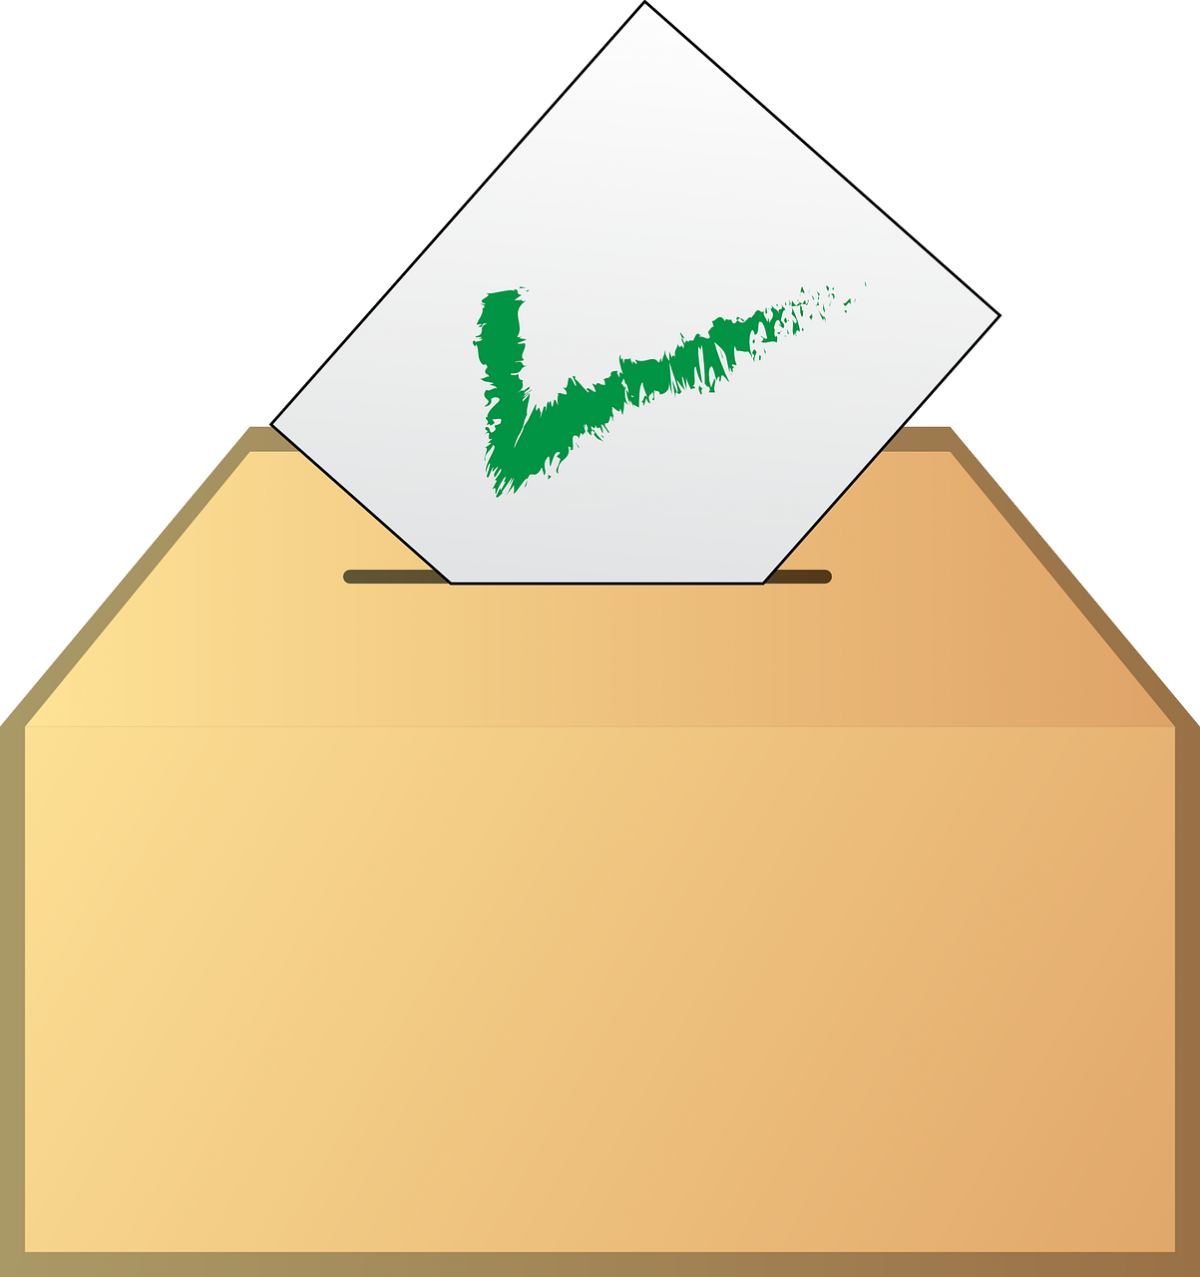 Pointing clipart voting. Approval follow my vote